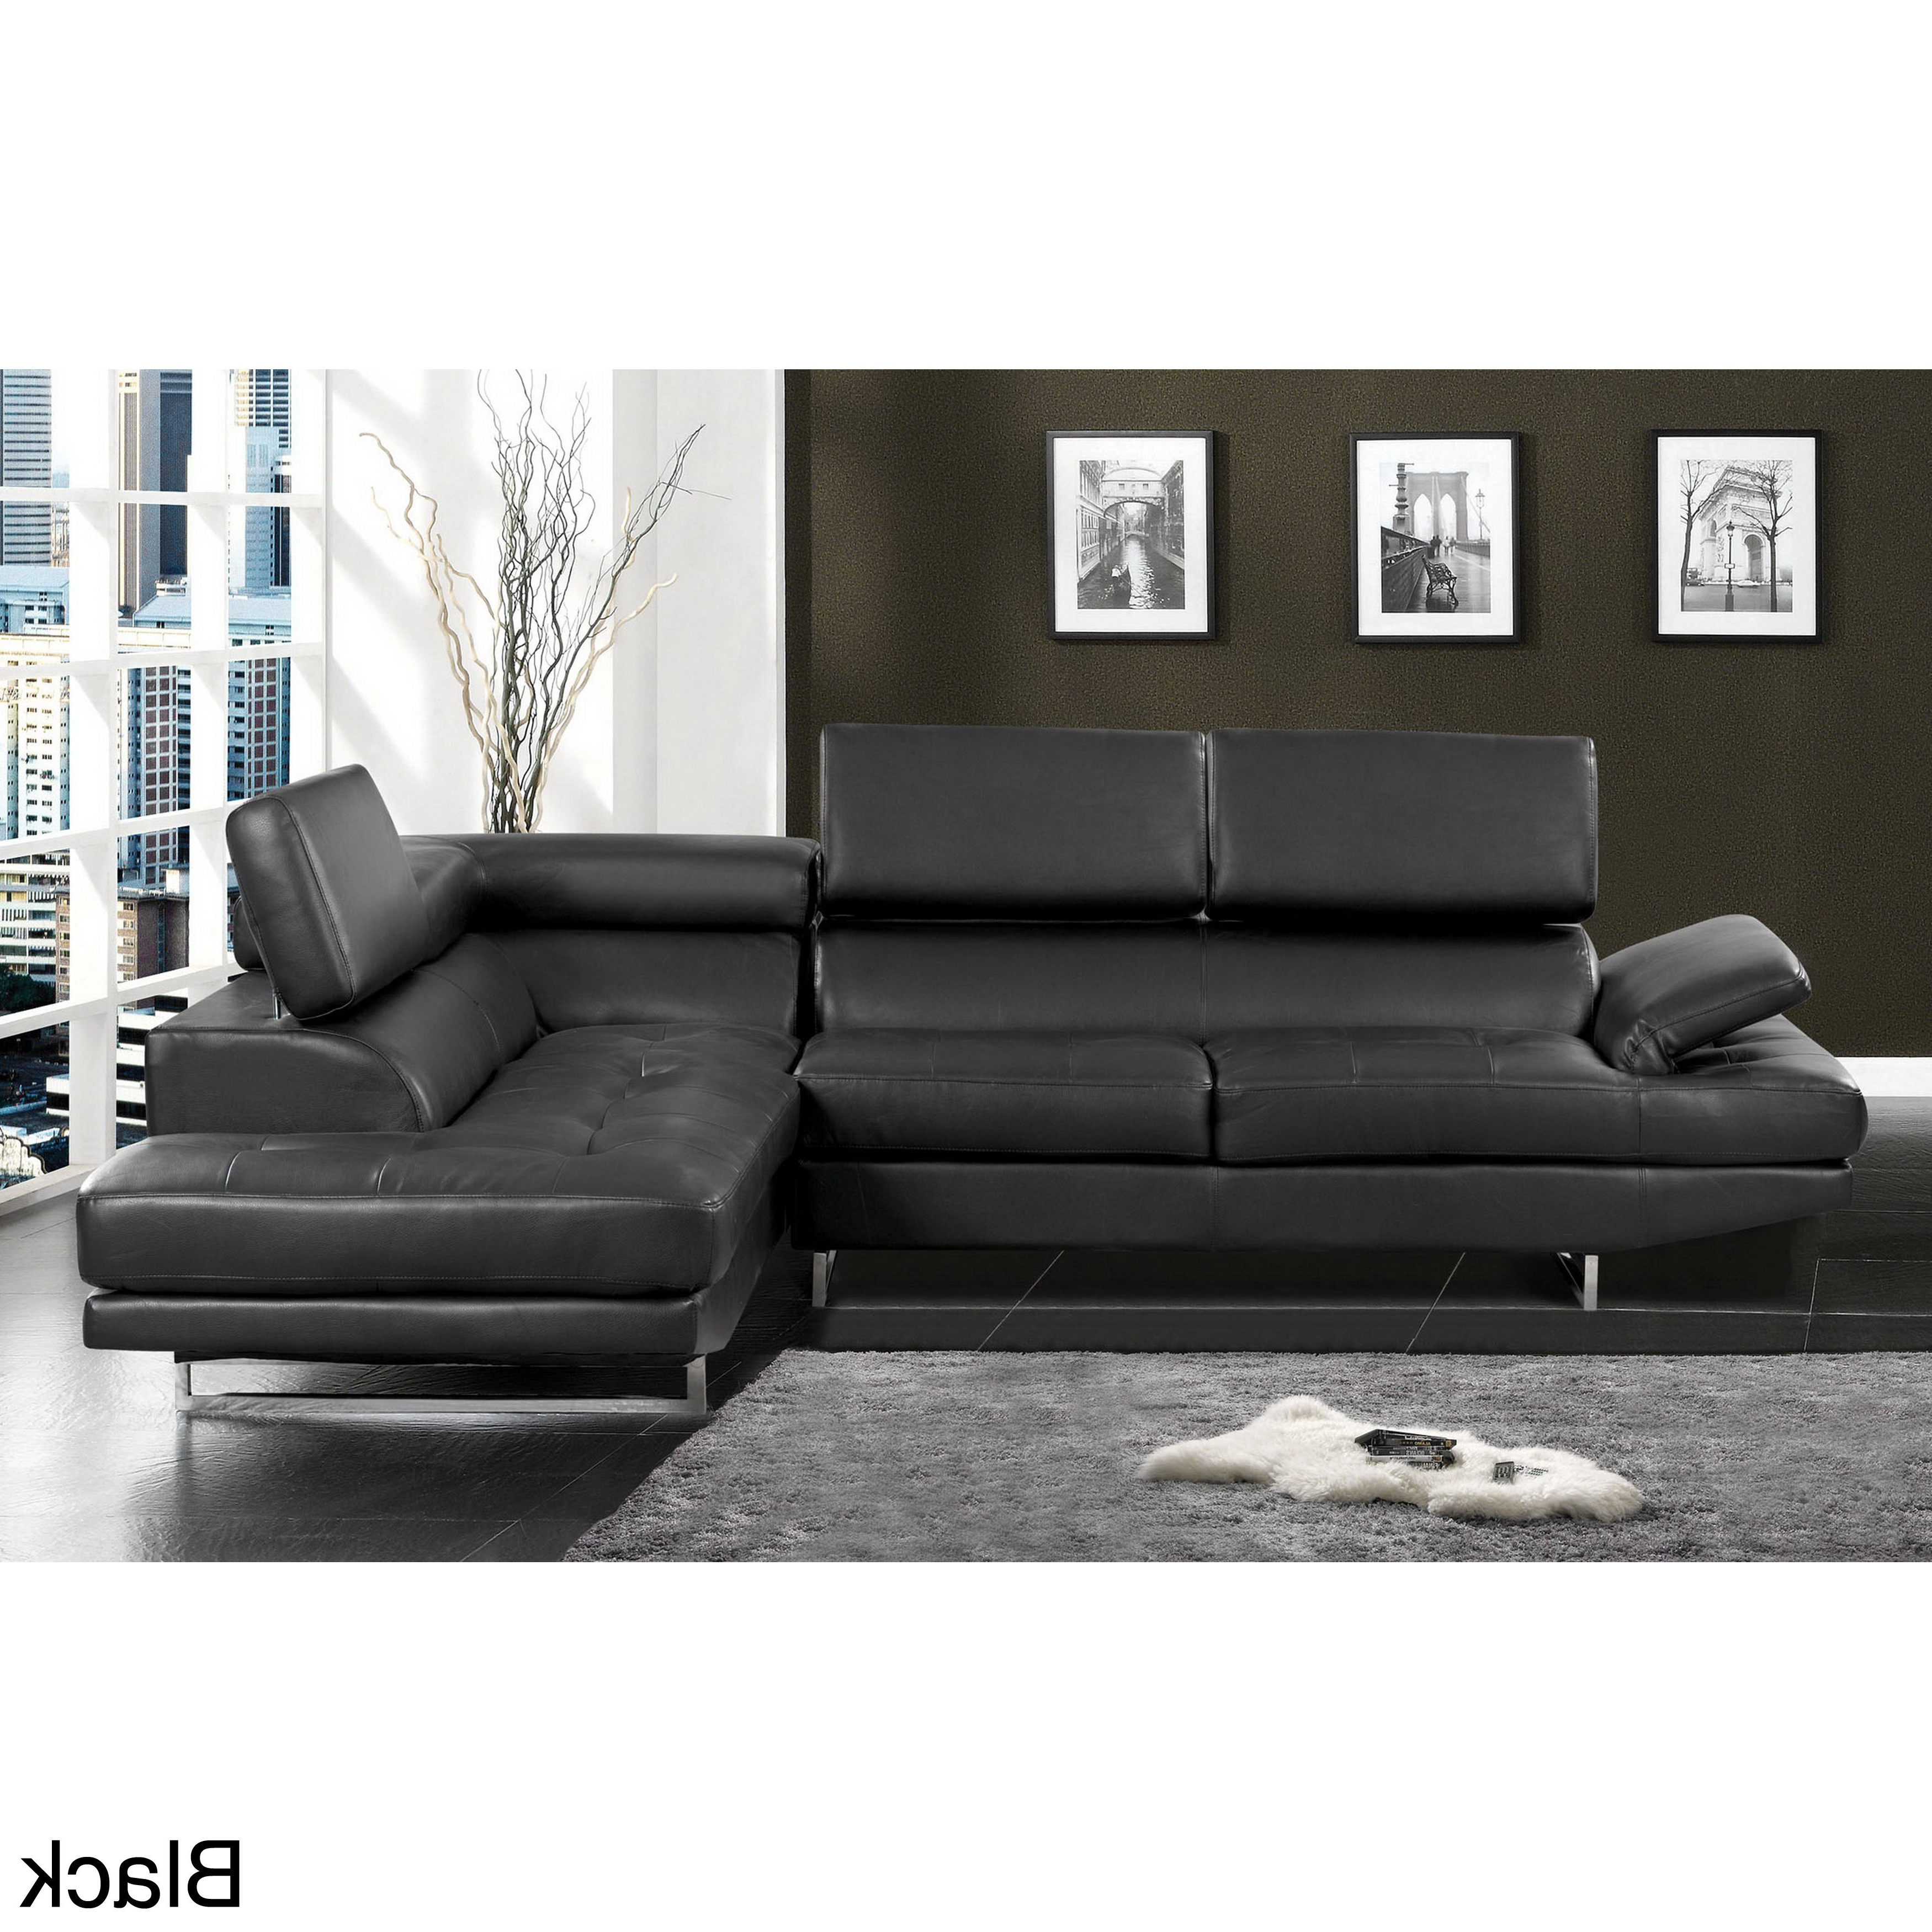 Tenny Cognac 2 Piece Left Facing Chaise Sectionals With 2 Headrest Regarding Newest Leather Sectional With Adjustable Headrest @os (View 18 of 20)